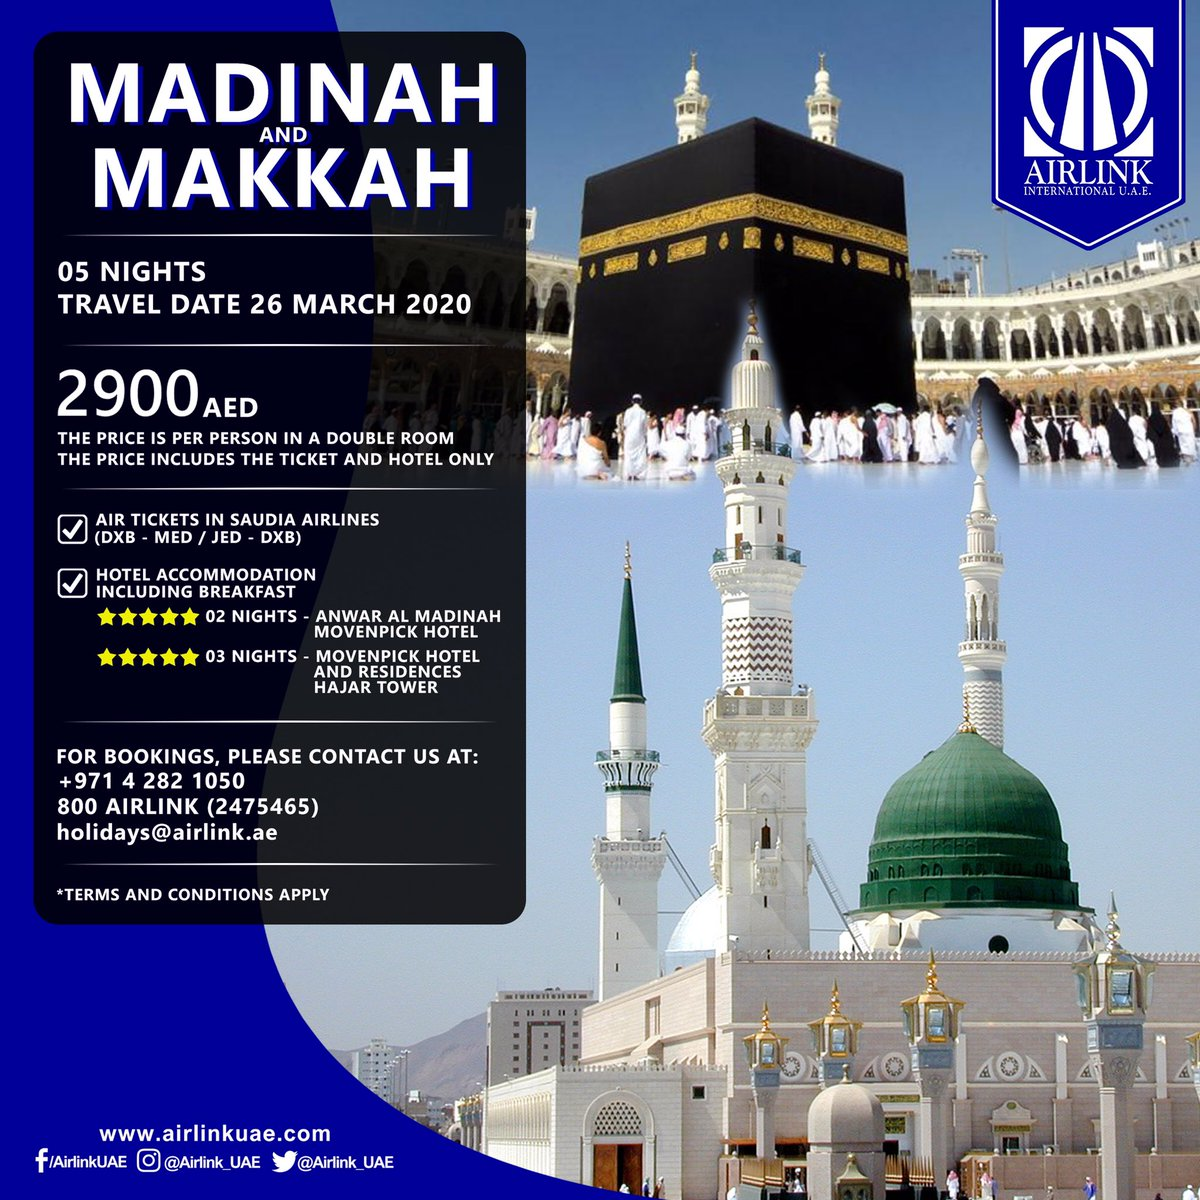 EXCLUSIVE OFFER - MADINAH and MAKKAH - Travel date: 26 March 2020 - 2900 AED* - For bookings, please contact:  +971 4 282 1050  800 AIRLINK (2475465)  holidays@airlink.ae - #AirlinkInternationalUAE #AirlinkInternational #Airlink #MyDubai #Dubai #UAE #Makkah #Madinahpic.twitter.com/PKz68YWy16